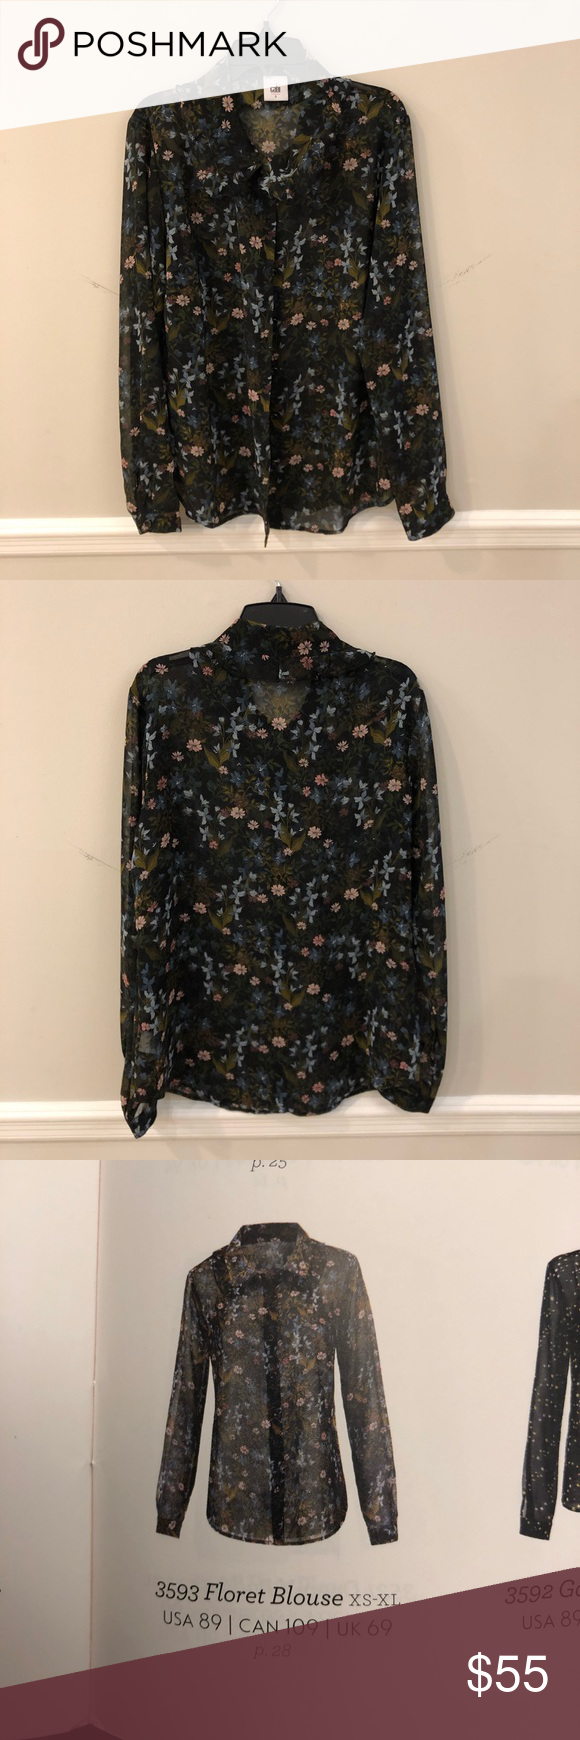 CAbi floret blouse Smoke and pet free home 2day shipping